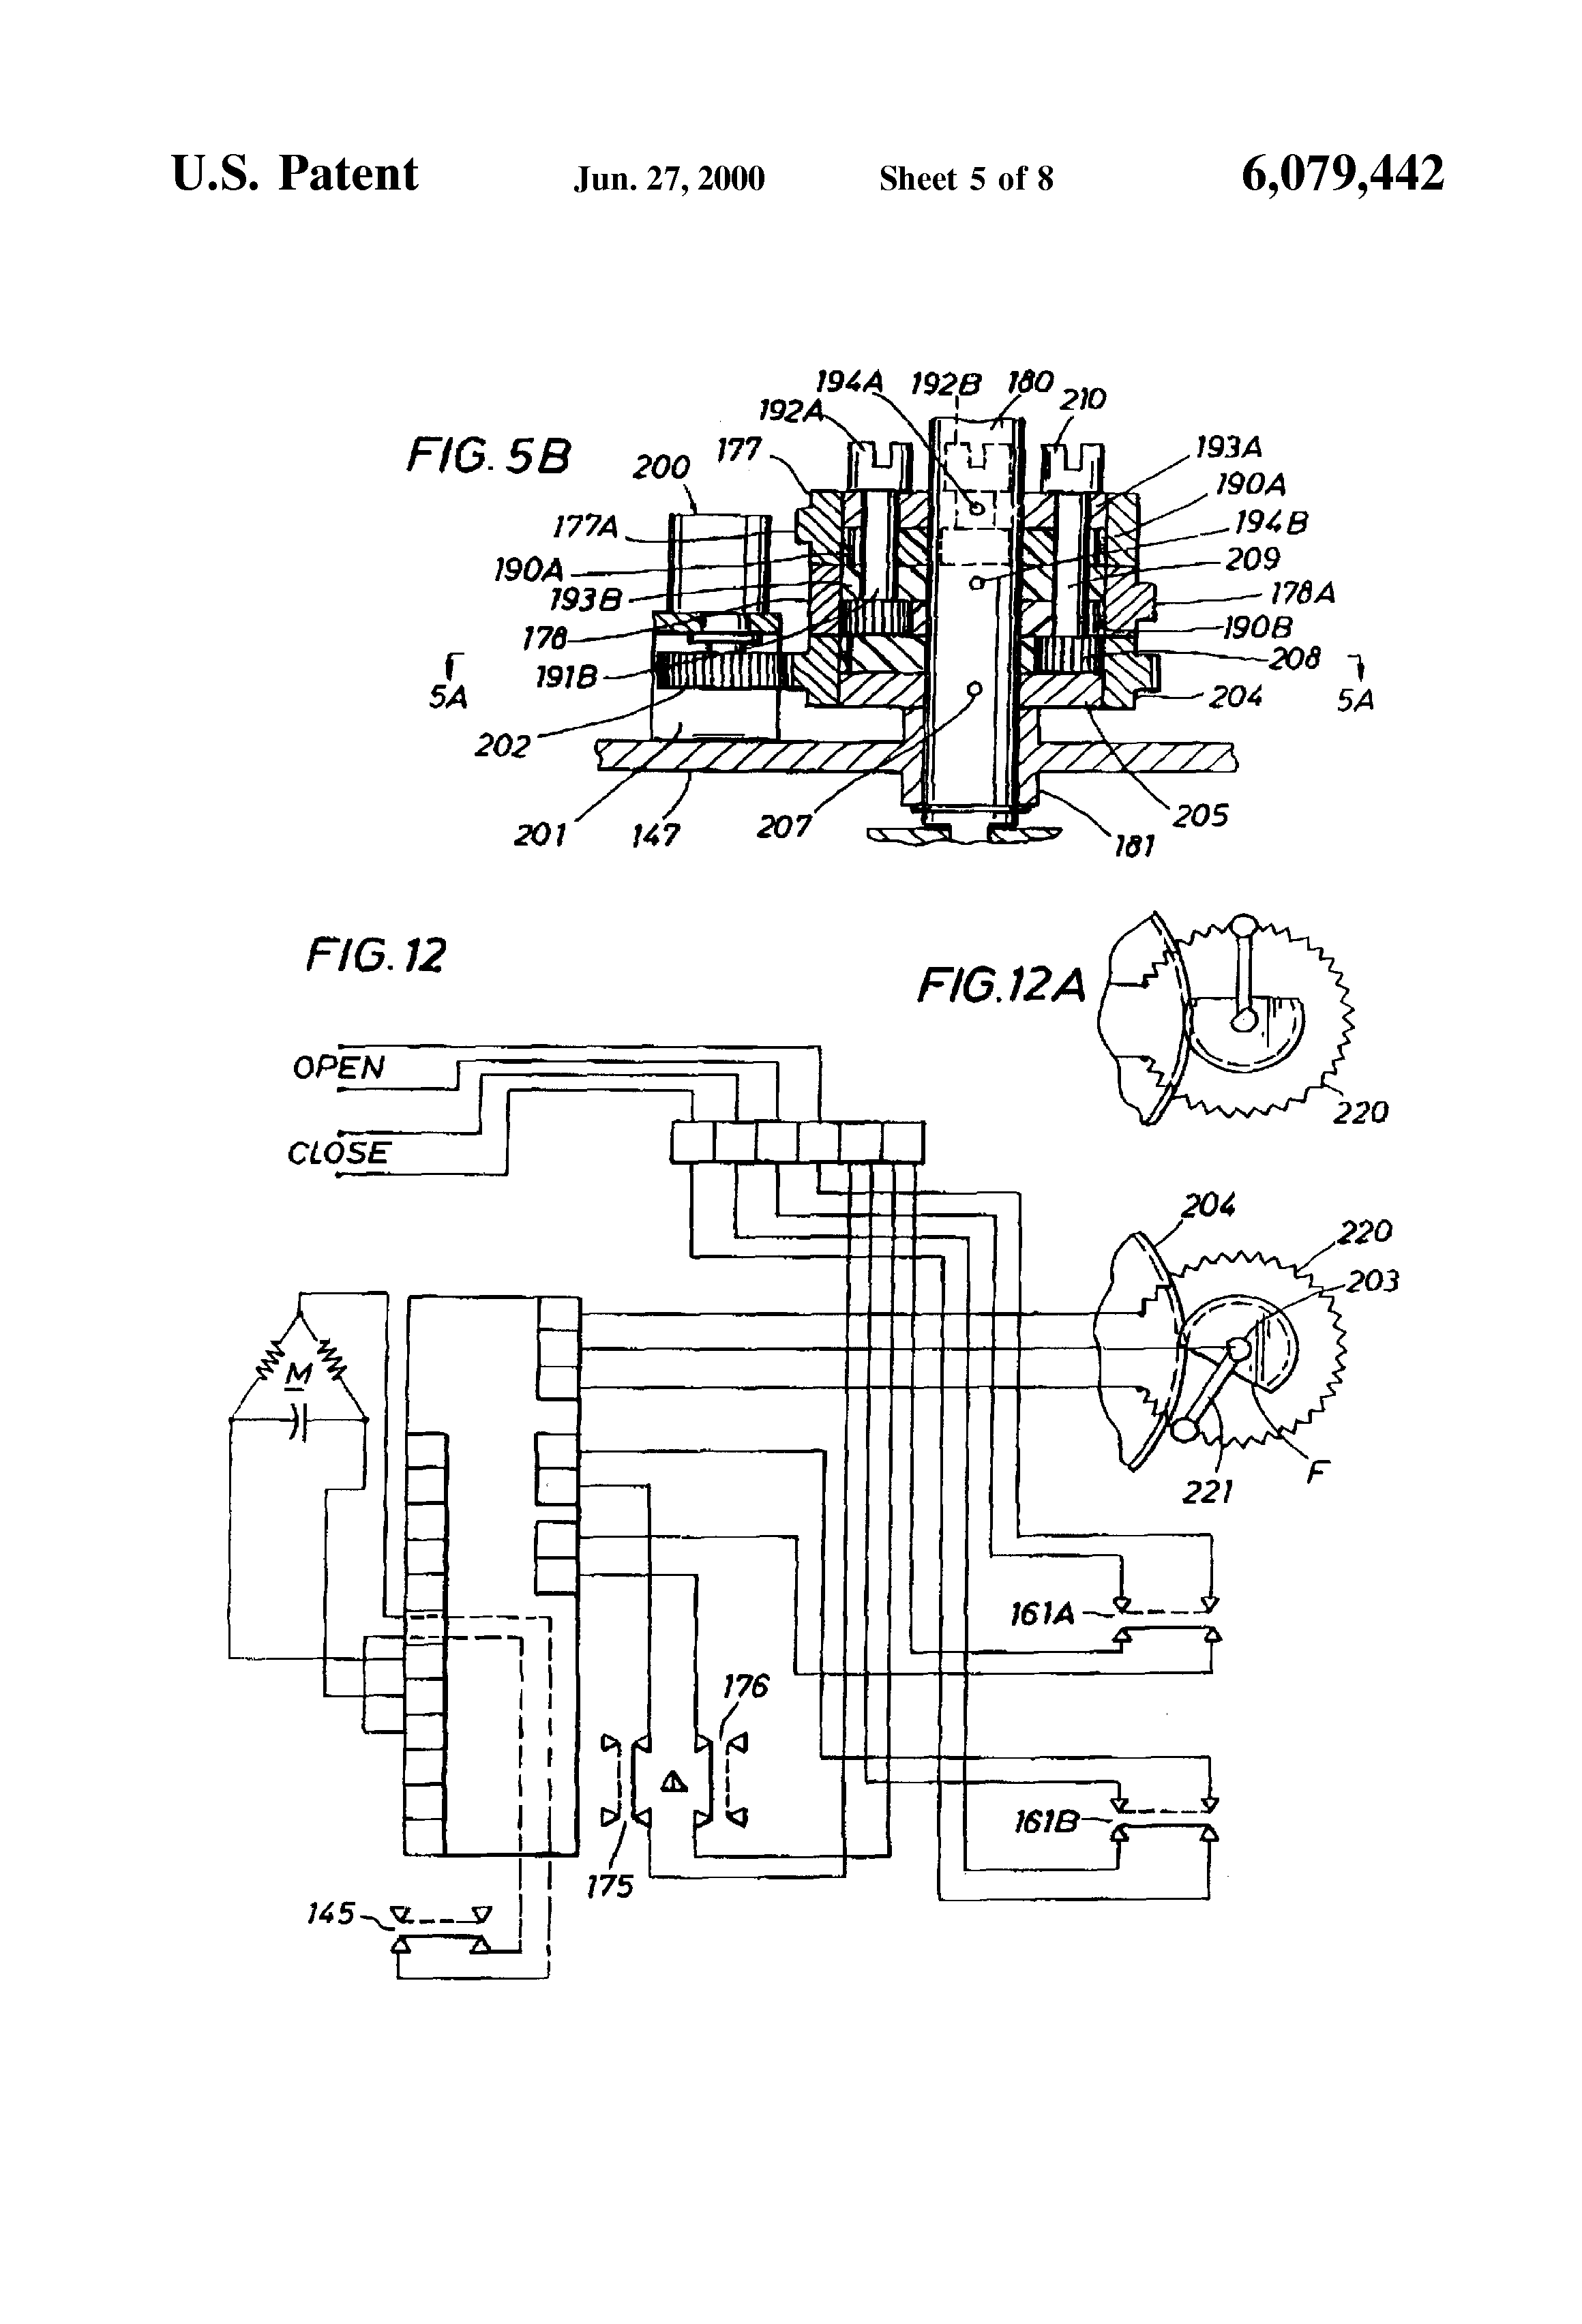 auma actuator circuit diagram wiring diagrams patent us6079442 valve actuator google patents auma wiring diagrams car diagram